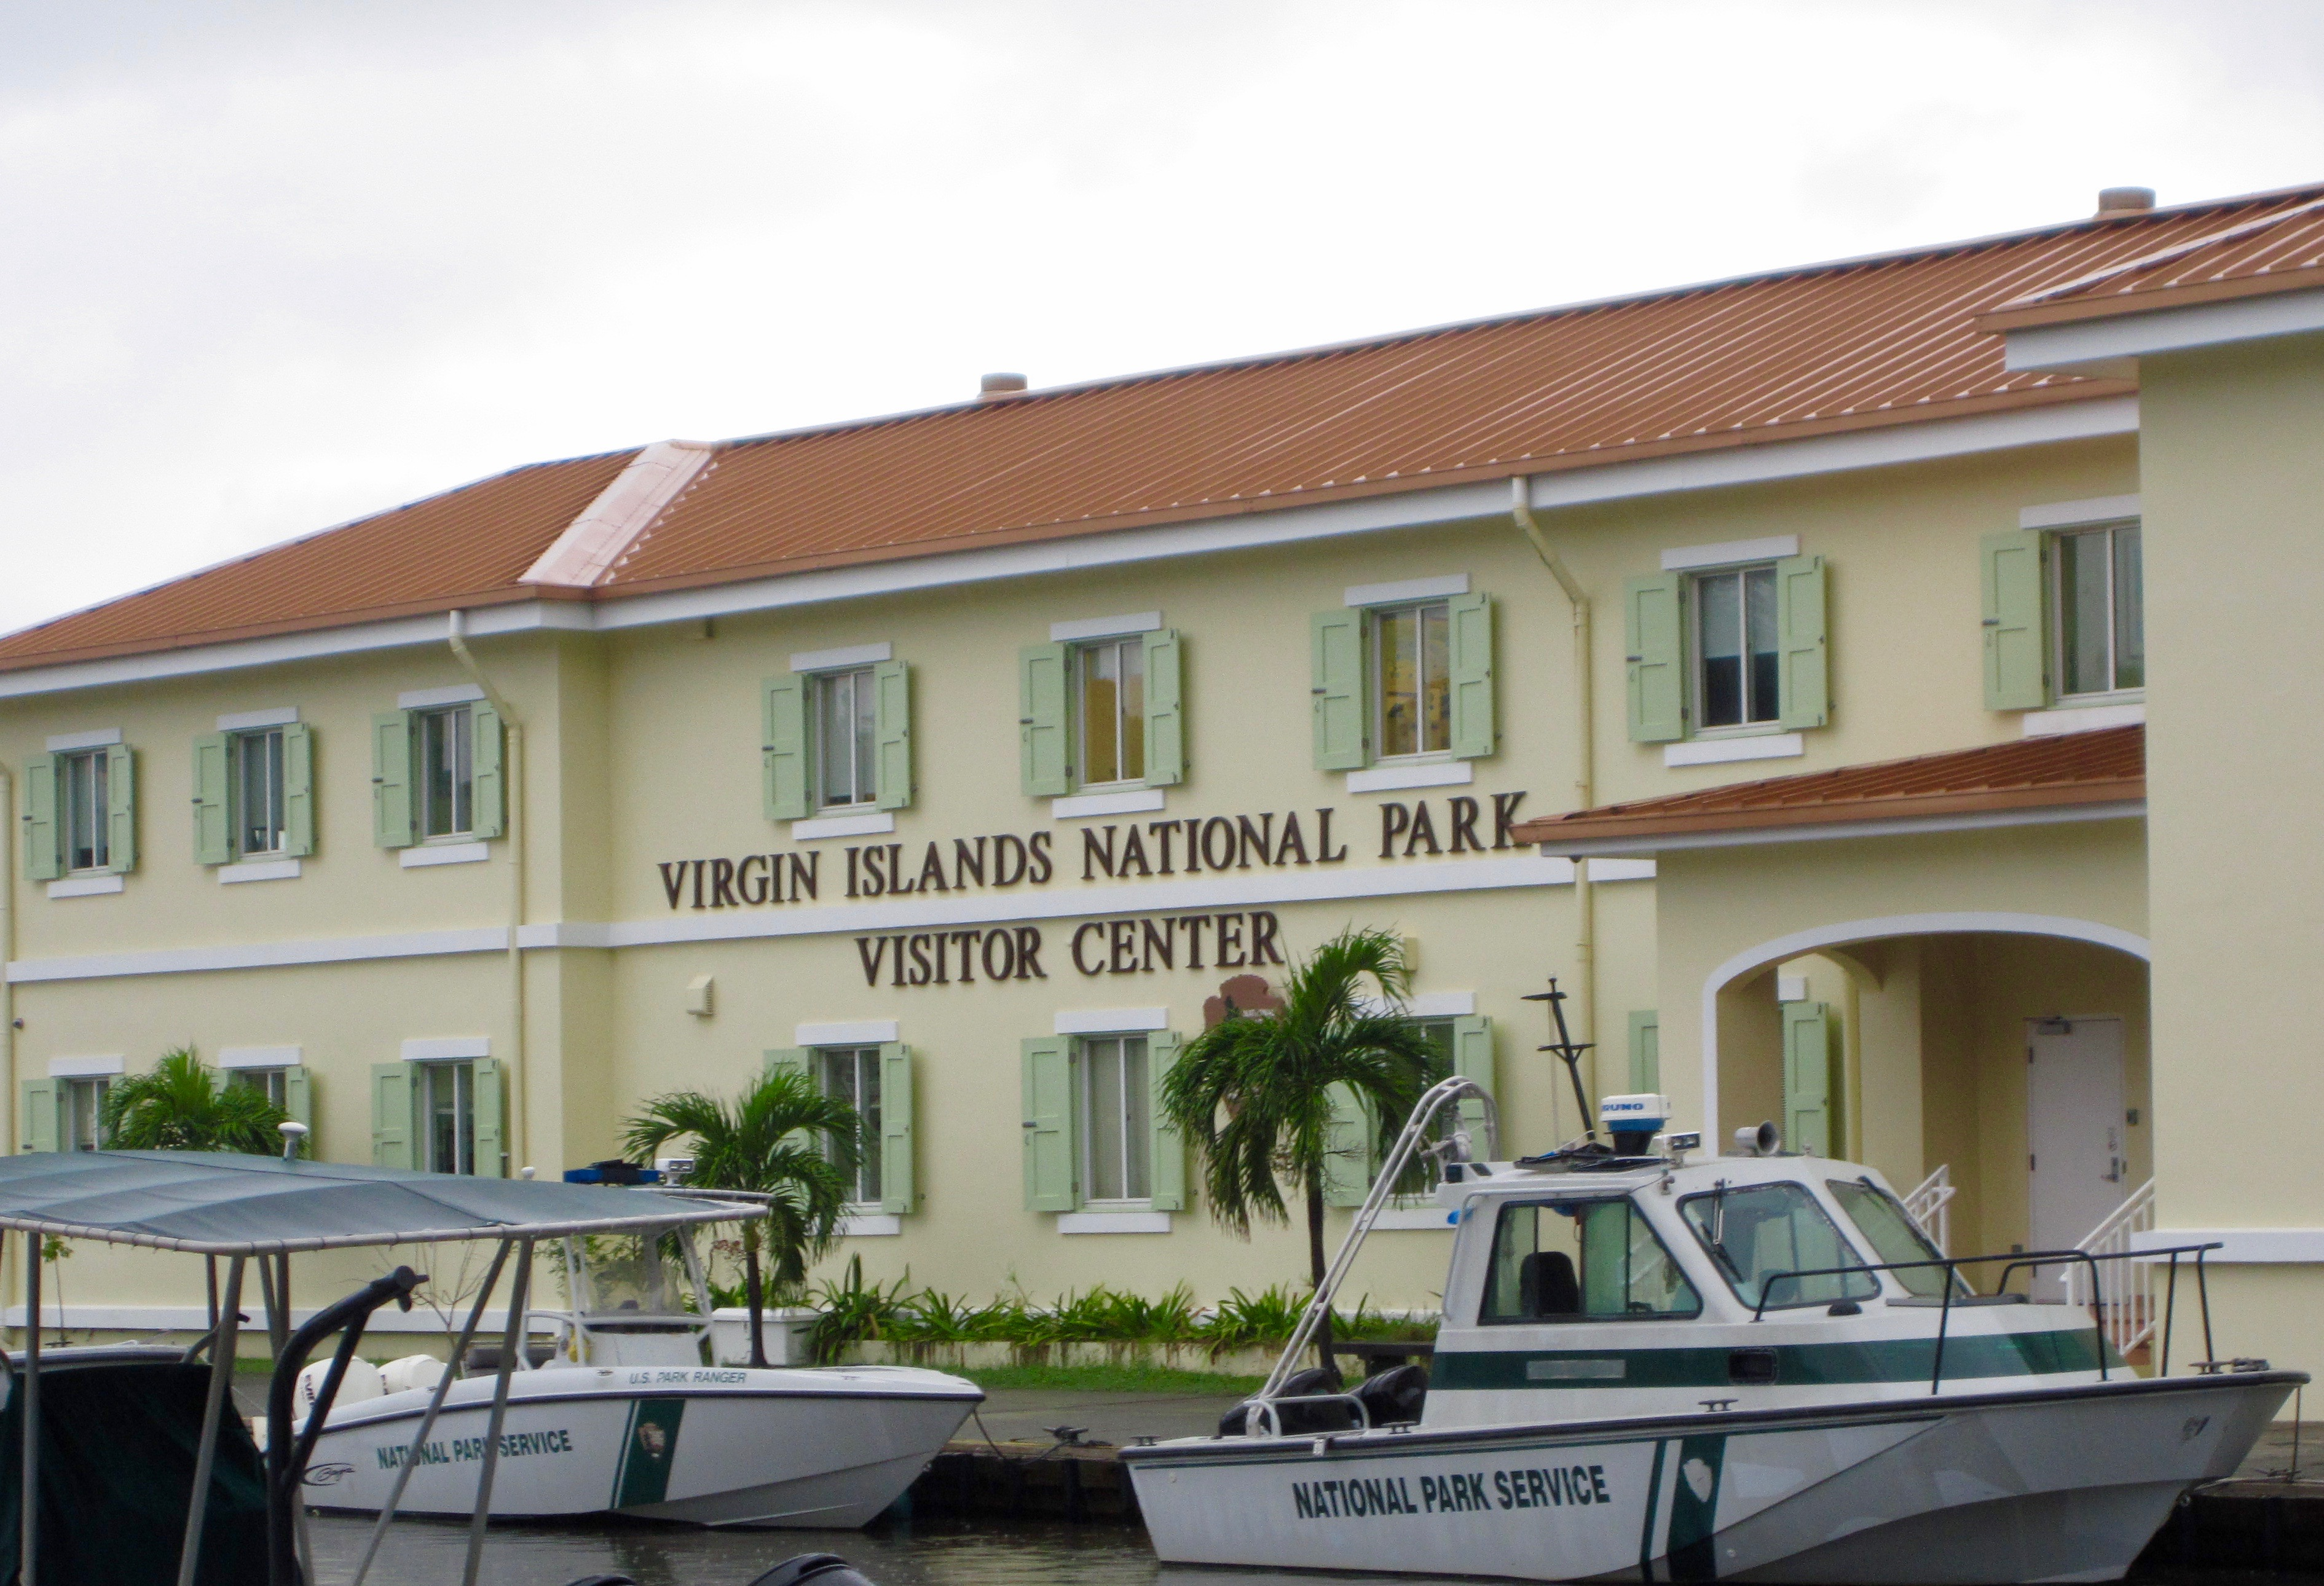 #33 Virgin Islands National Park